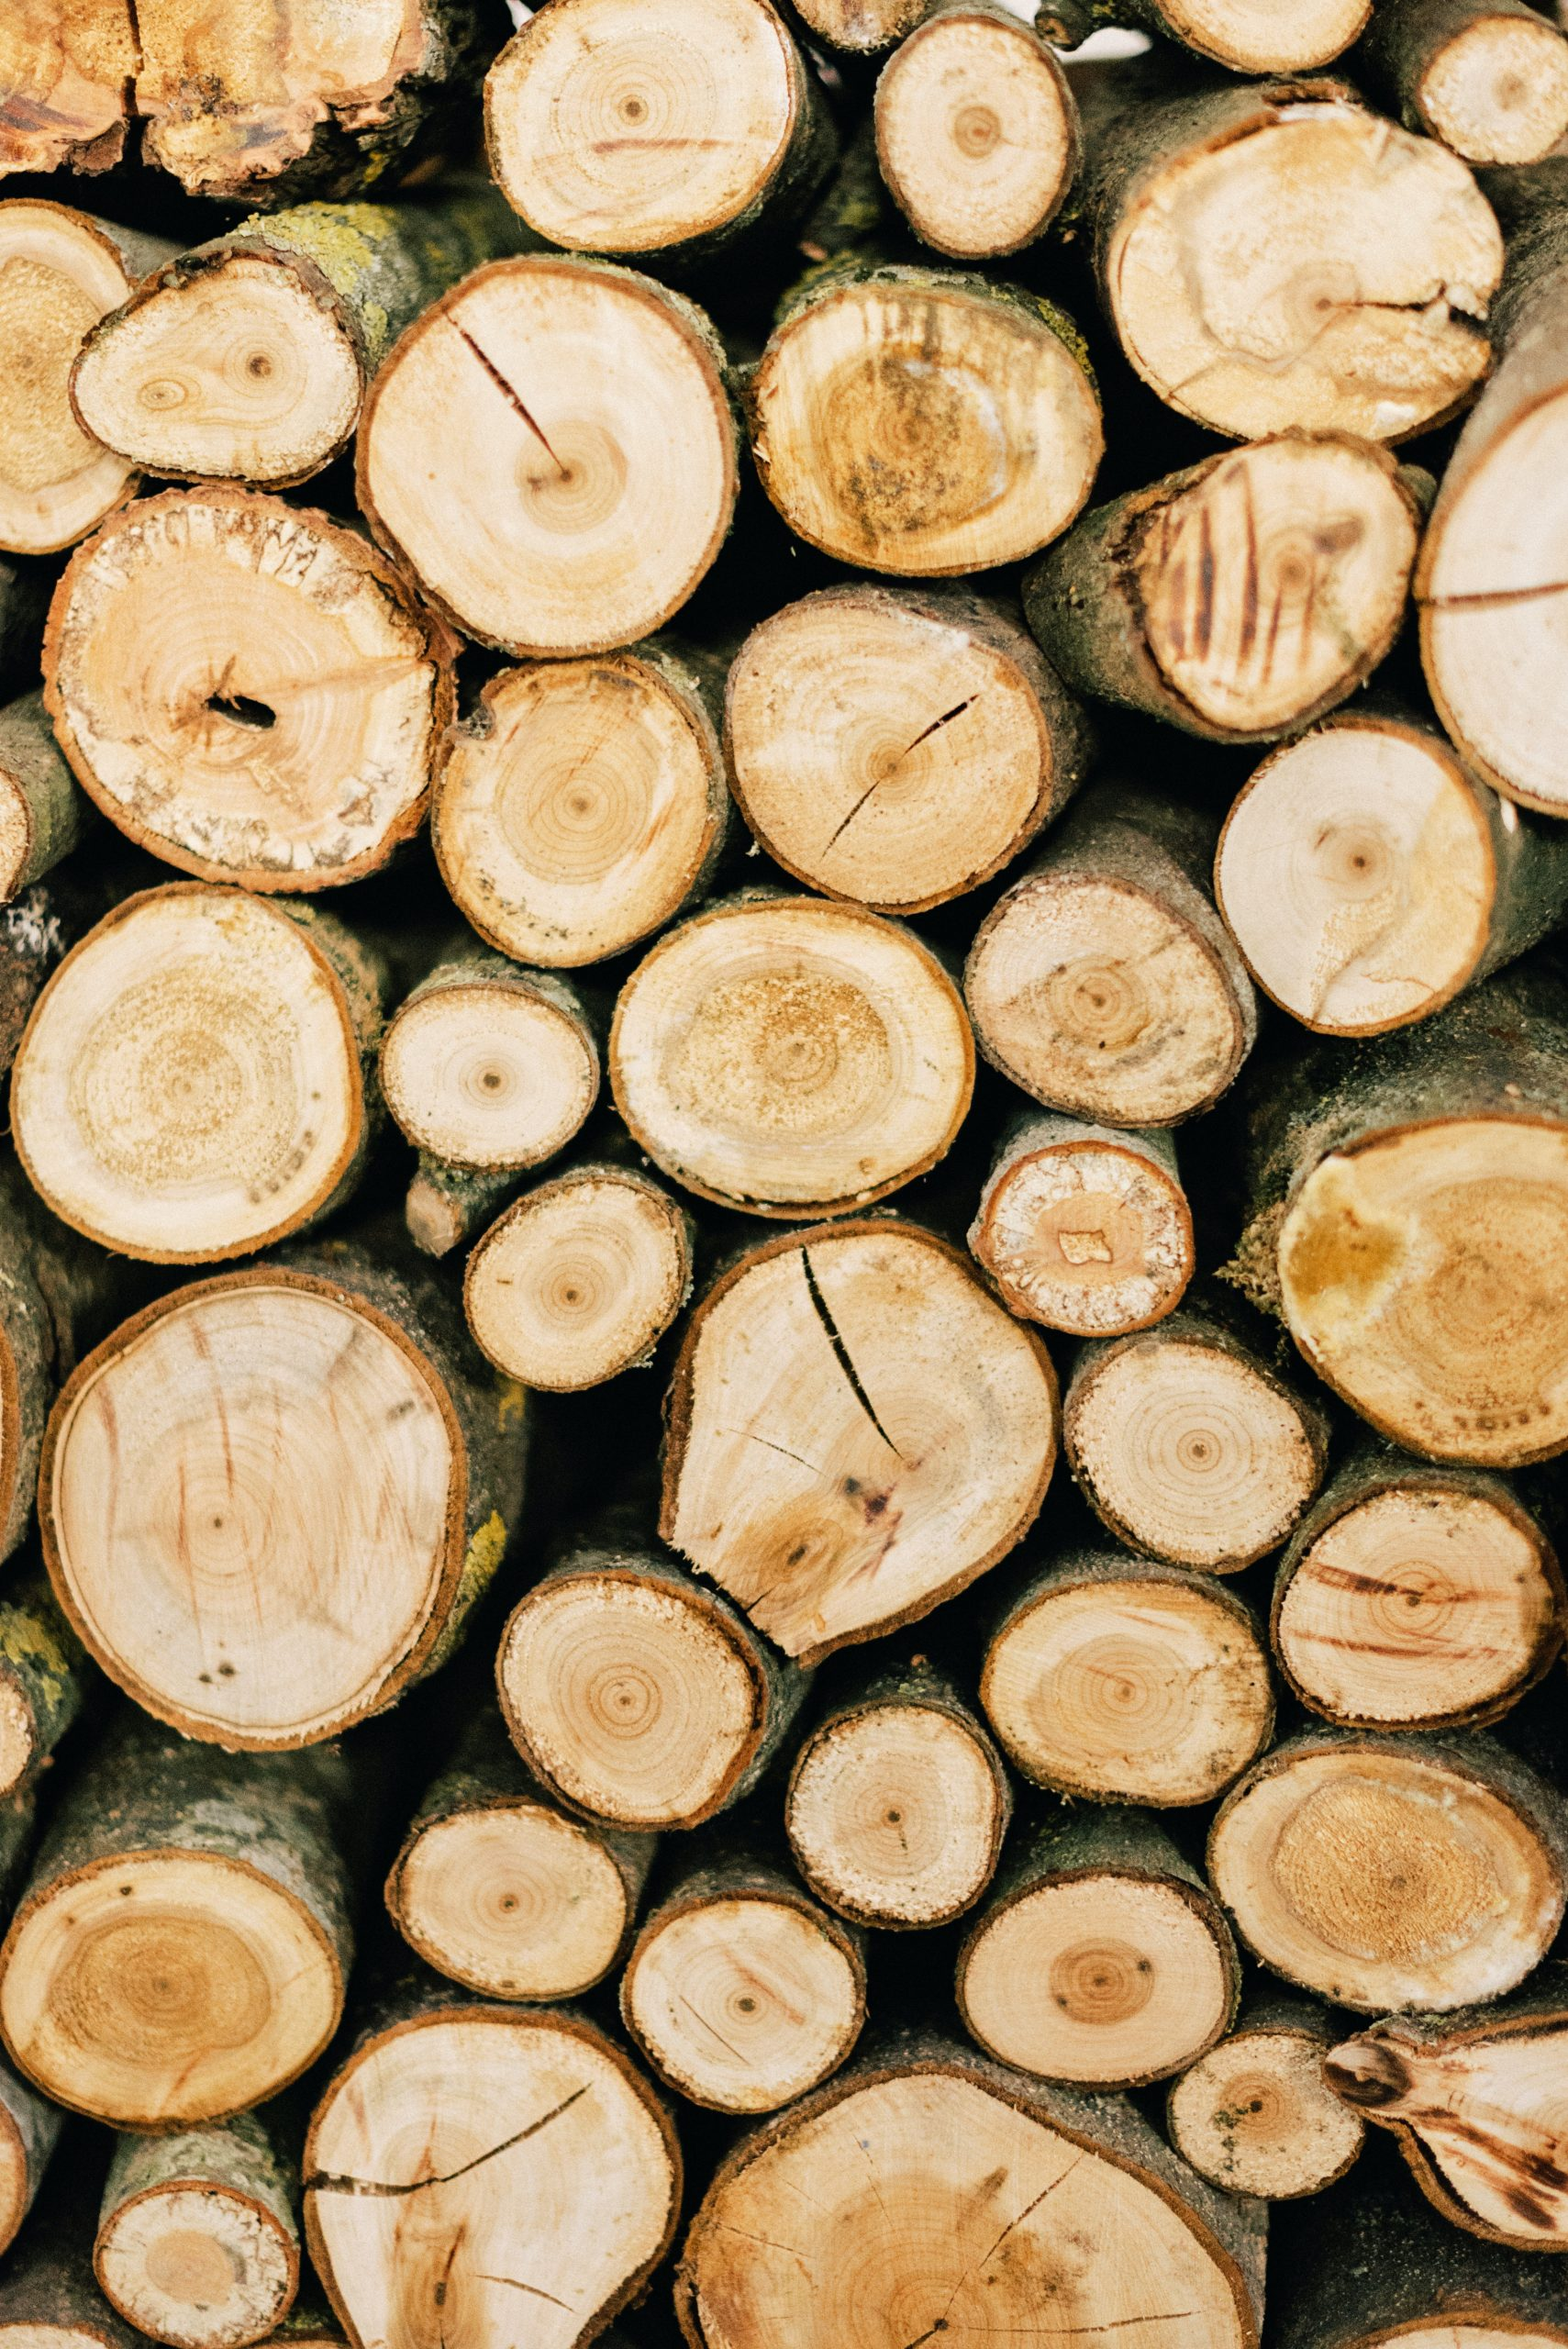 A stack of wood logs